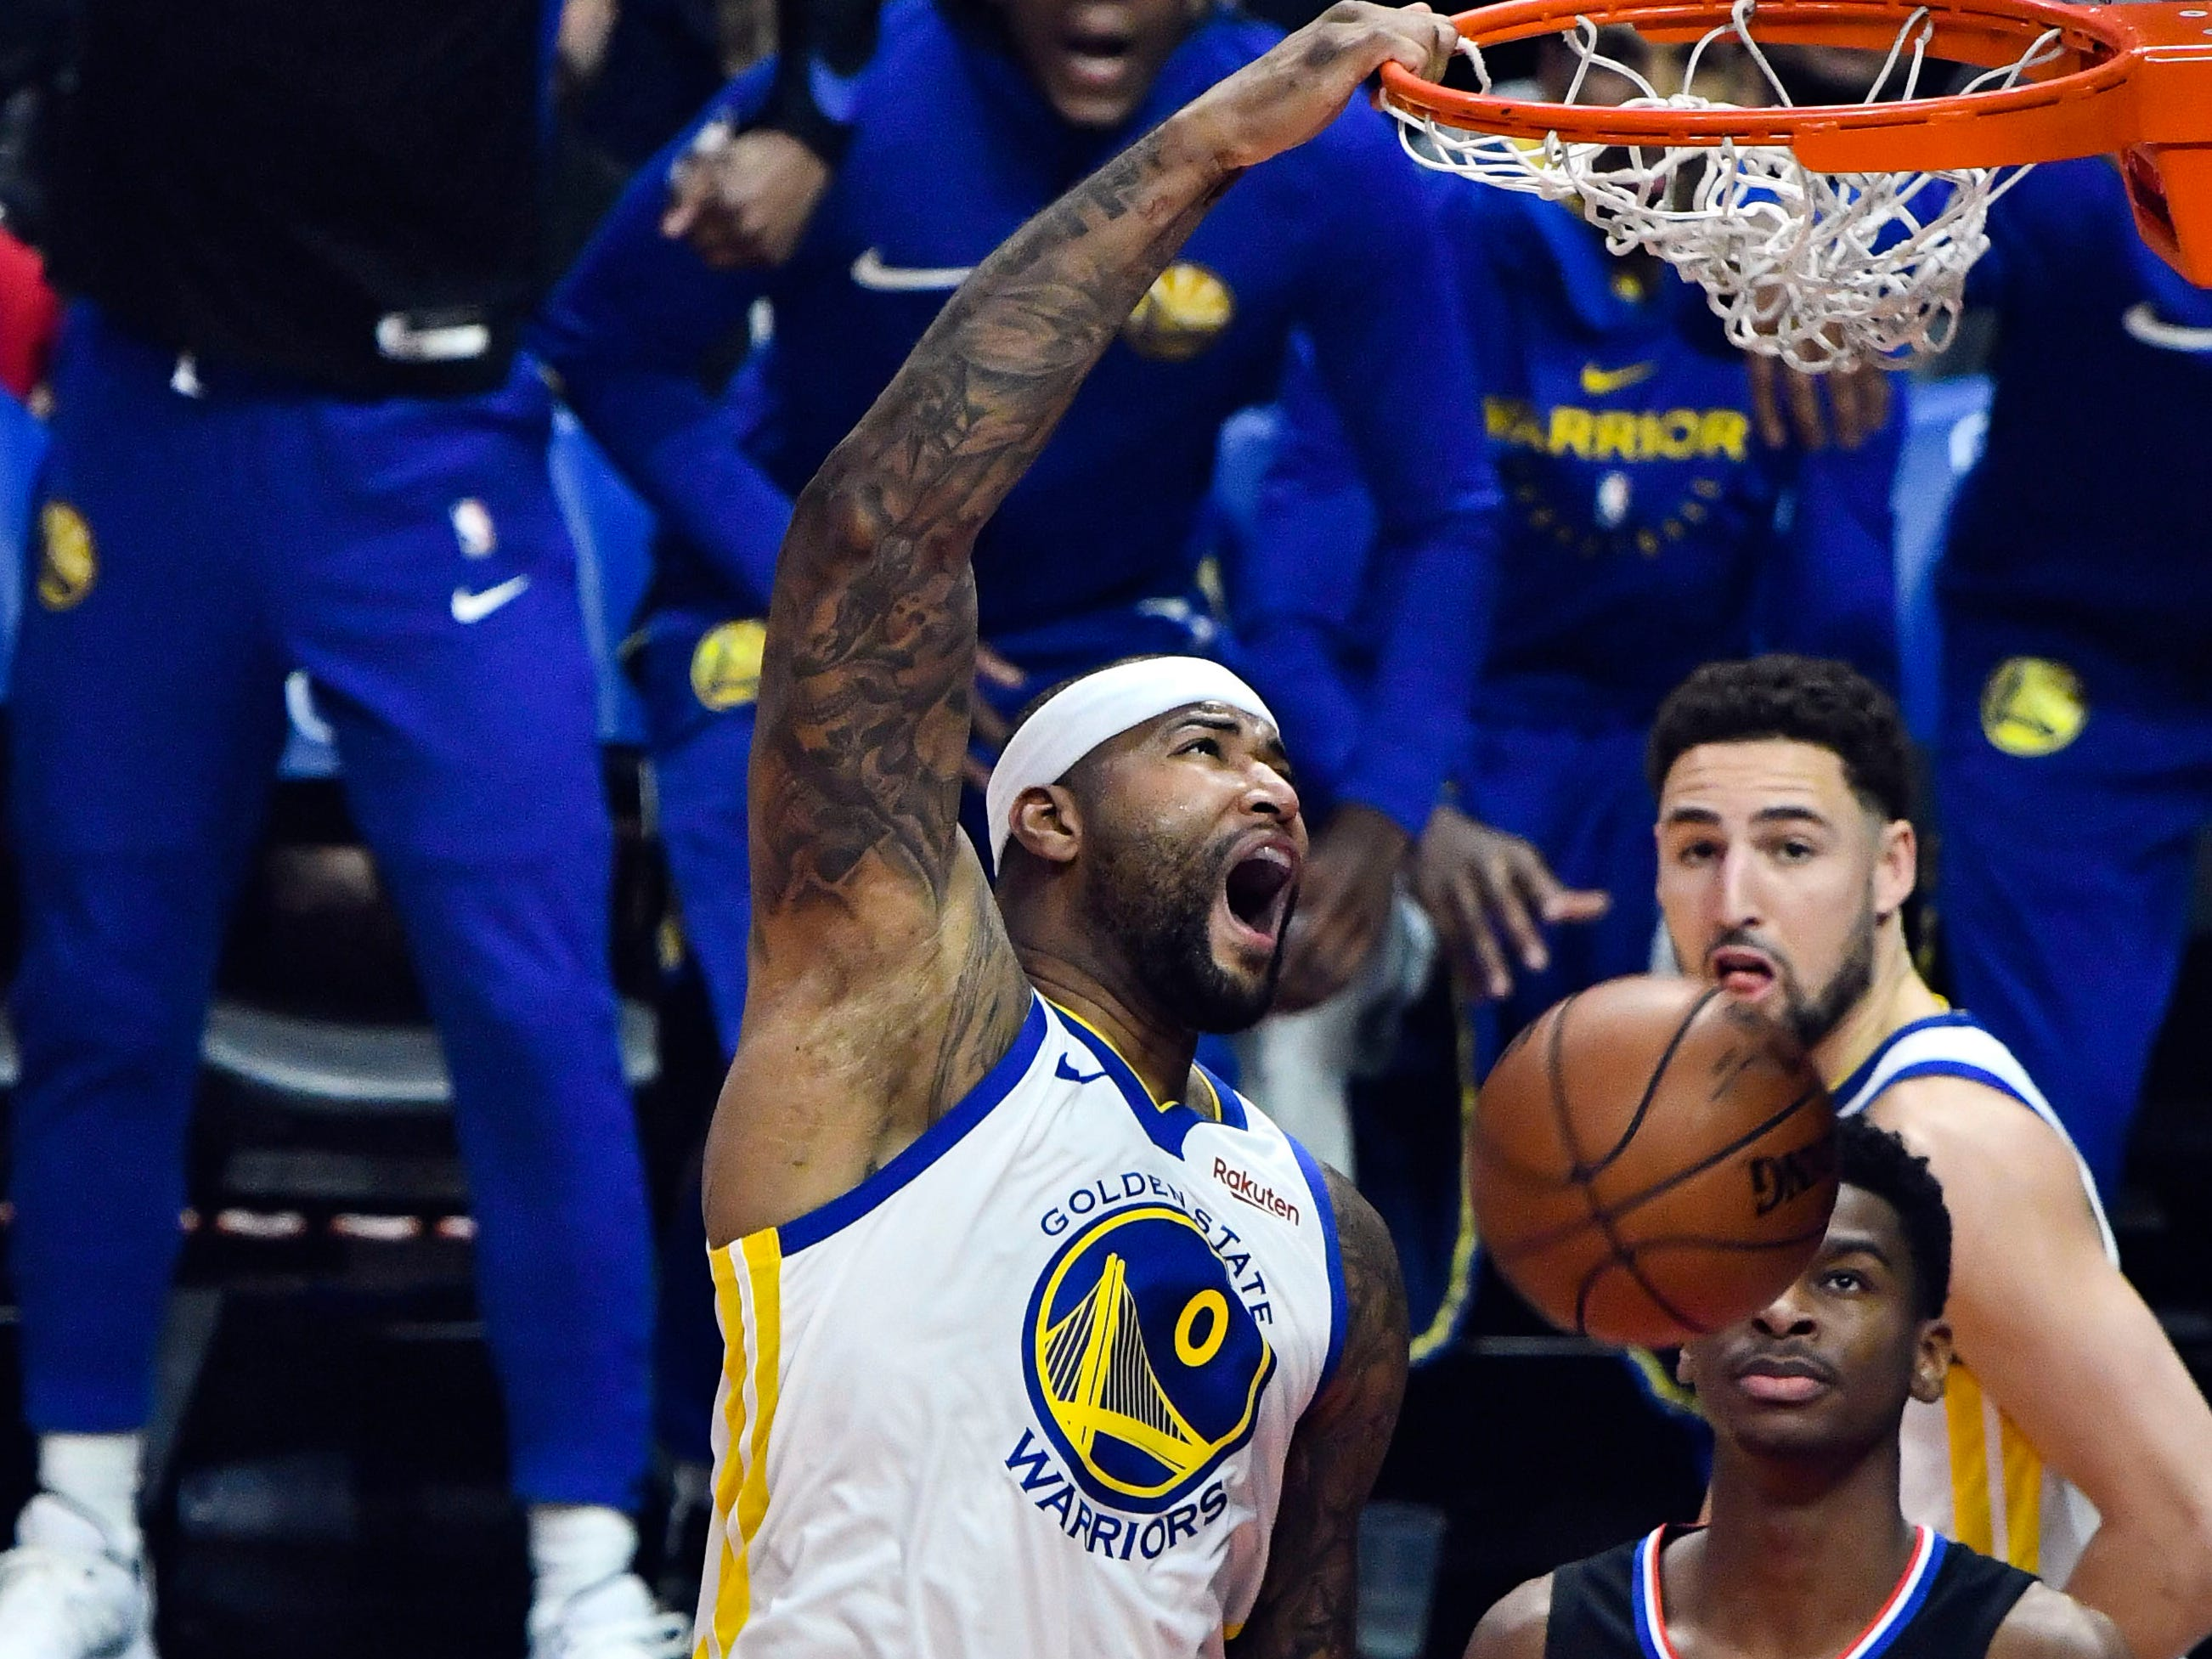 Jan. 18: Warriors center DeMarcus Cousins throws down a one-handed slam for his first points in his season debut against the Clippers in Los Angeles.